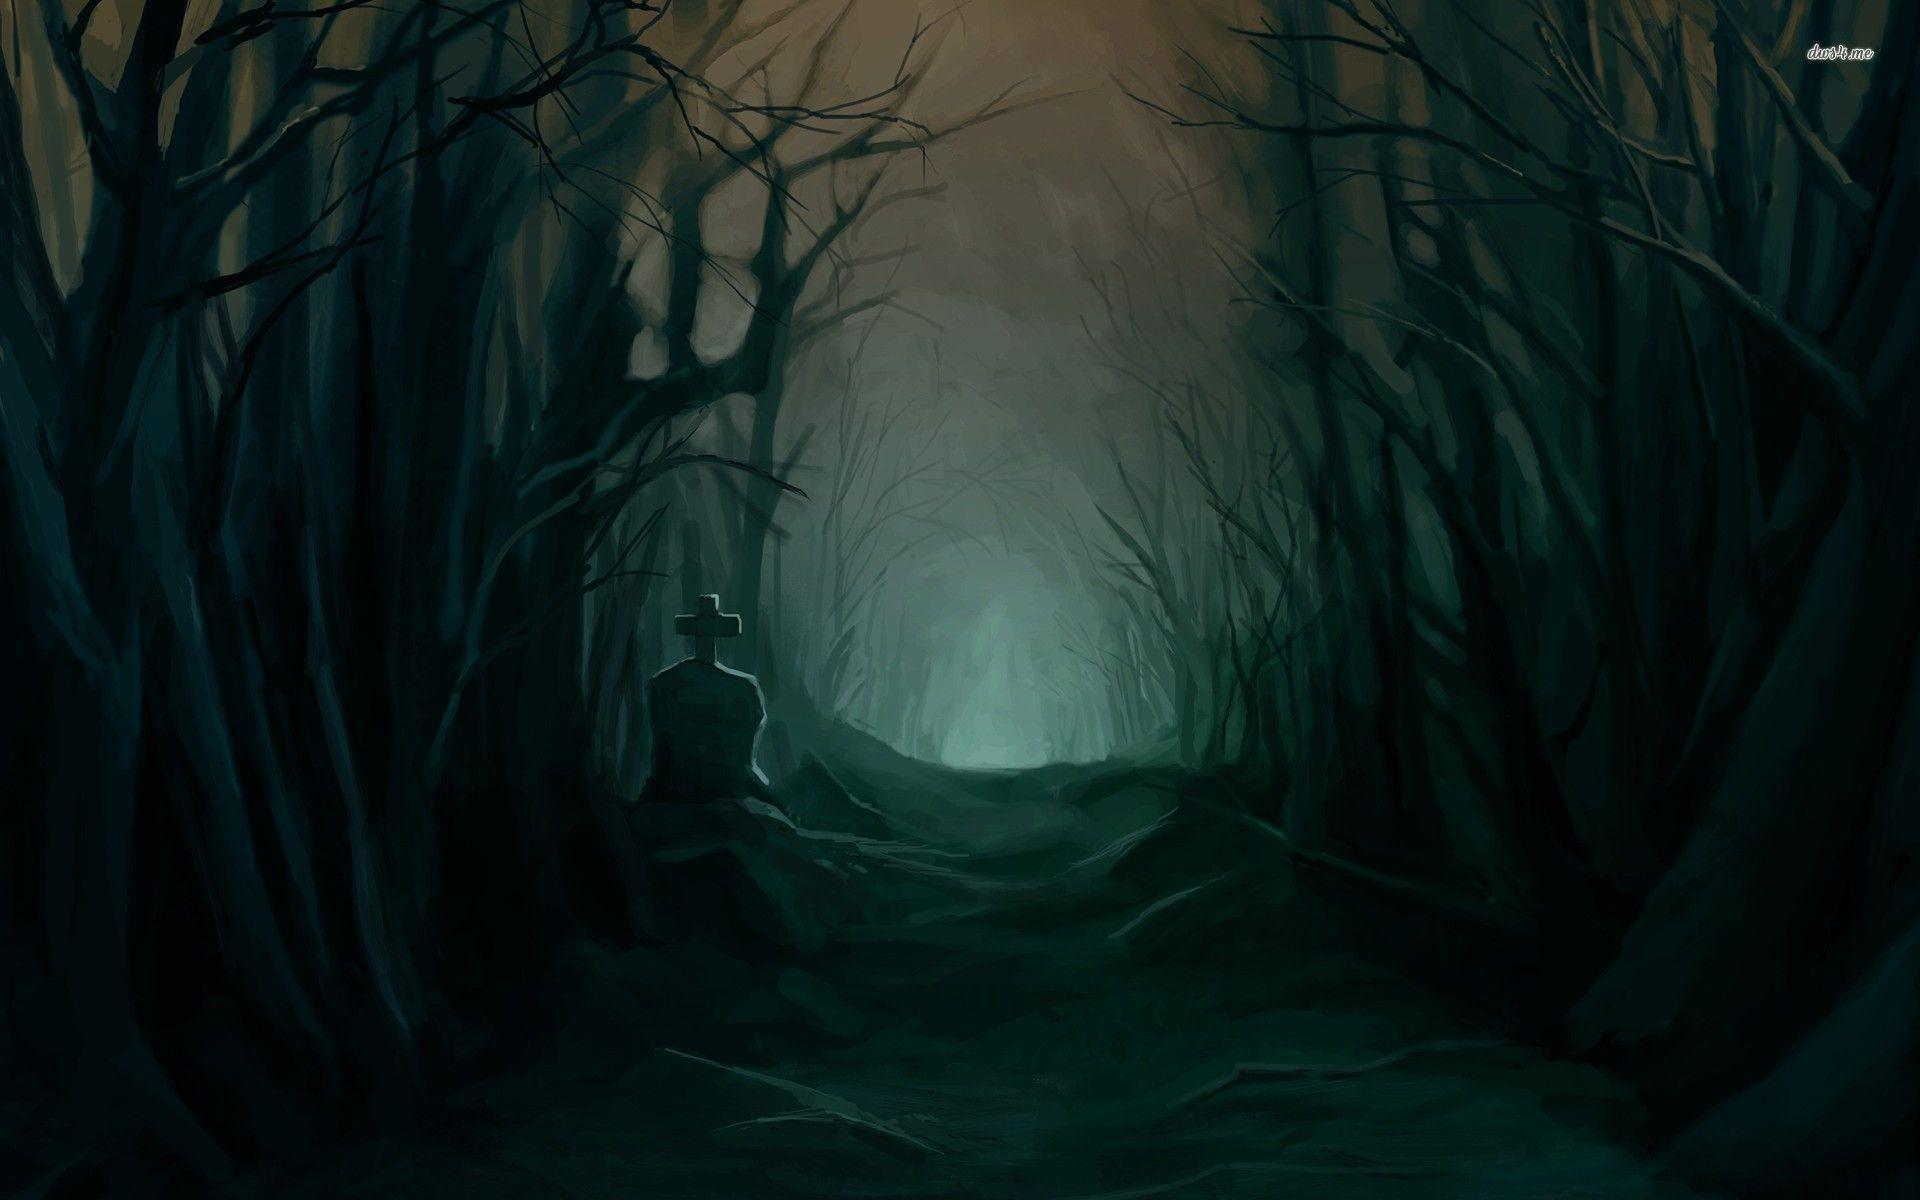 Dark Forest 18 392252 High Definition Wallpapers| wallalay.